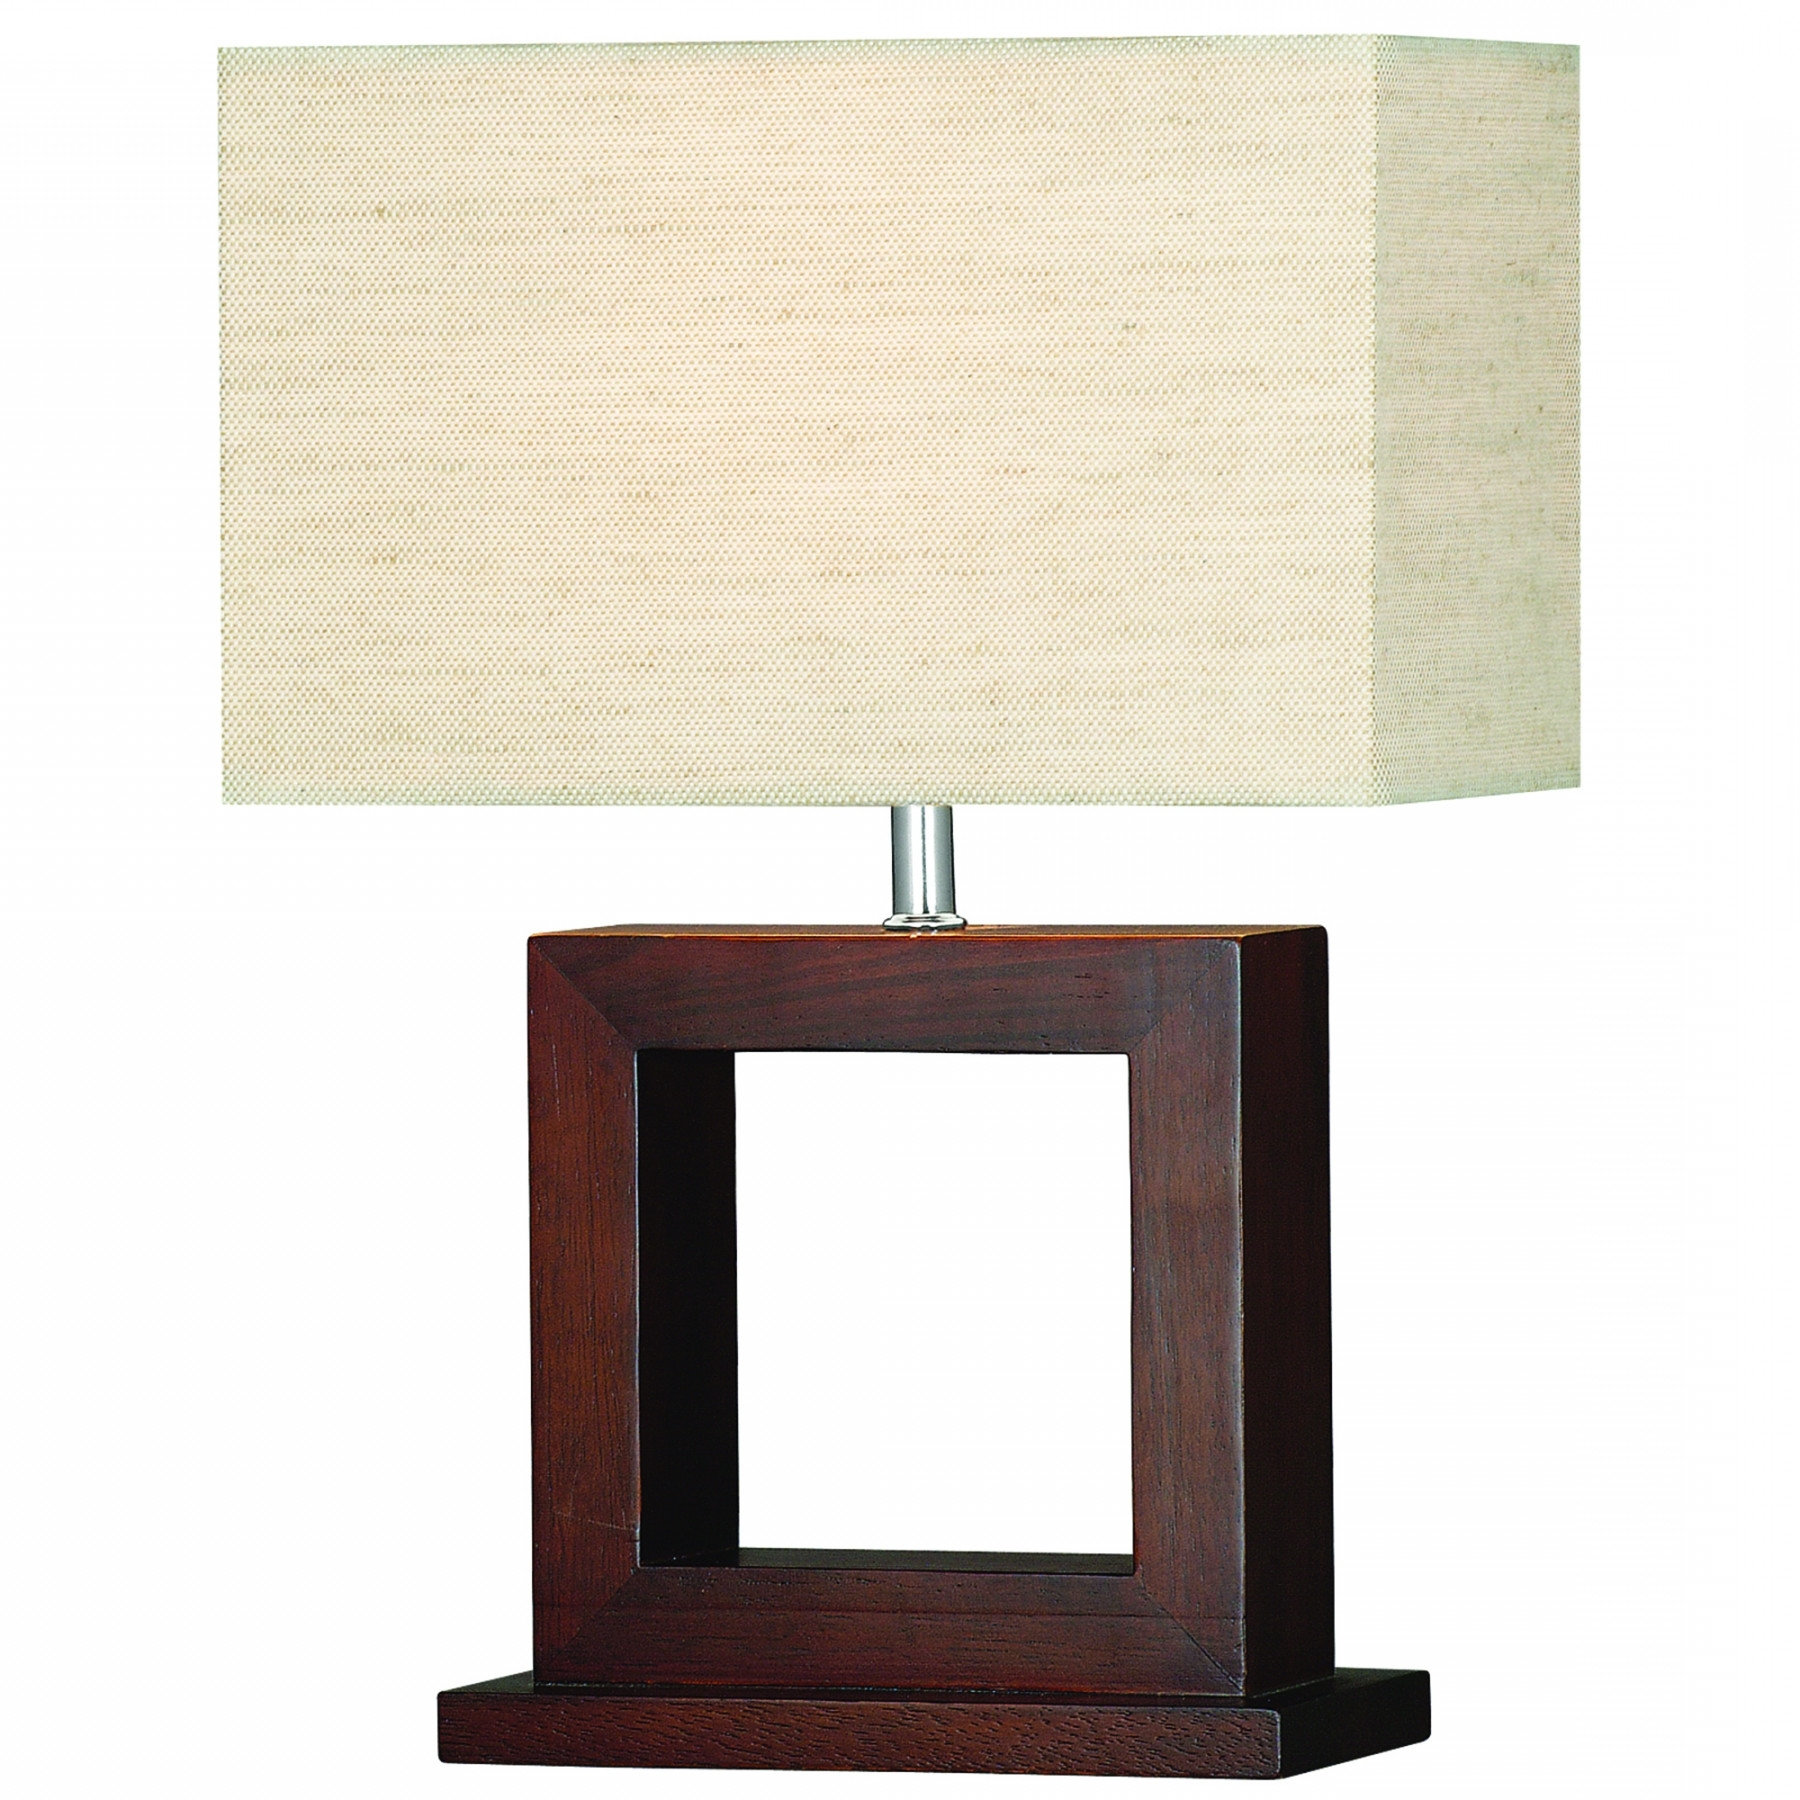 Cosmopolitan Dark Wood Table Lamp With Matching Oblong Shade Pertaining To 2018 Living Room Touch Table Lamps (View 1 of 15)